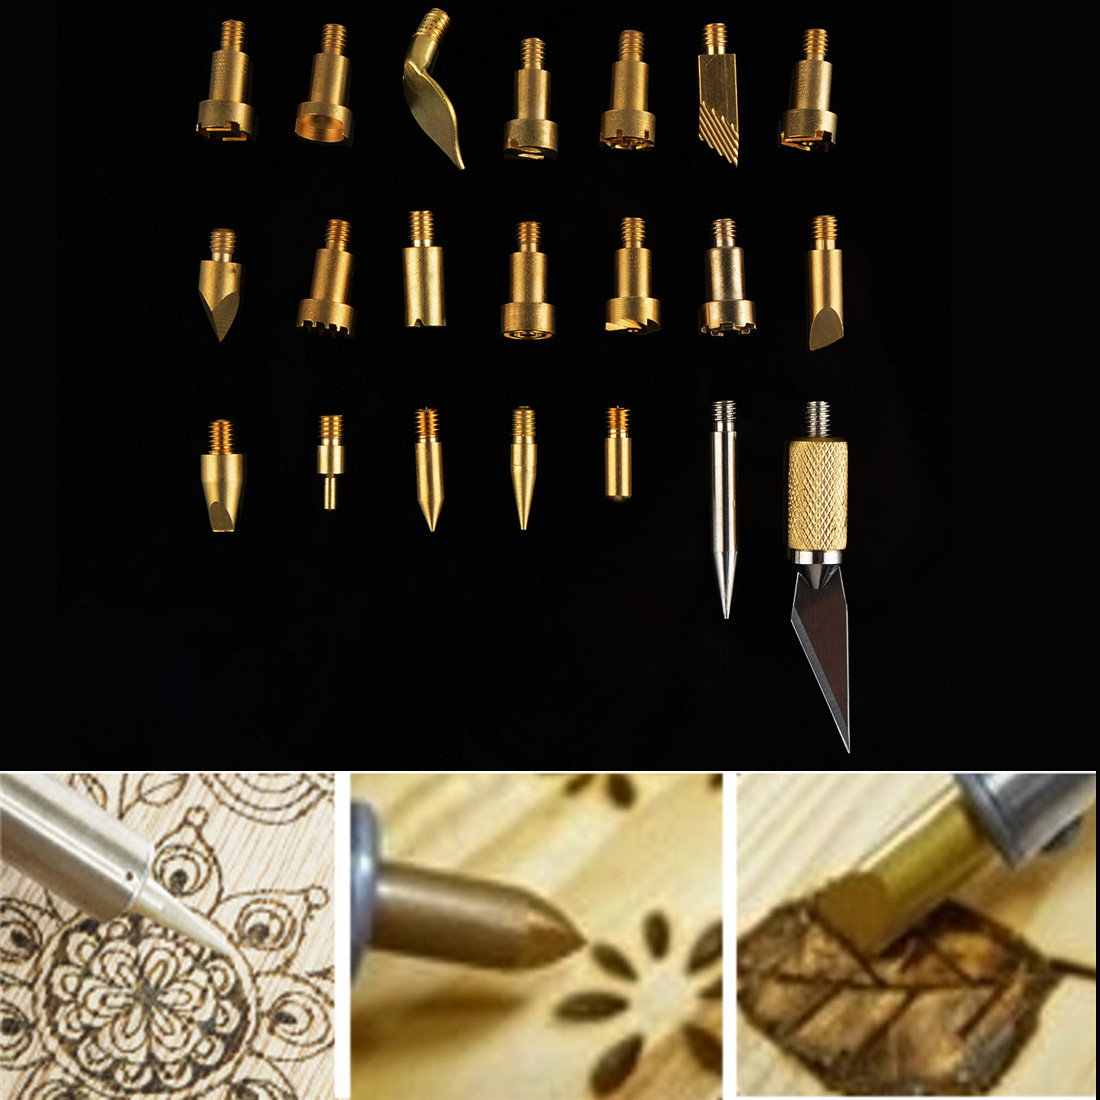 Hot Sell 22pcs Wood Burning Pen Tips Stencil Soldering Iron Tip For Pyrography Woodworking Carving Tool